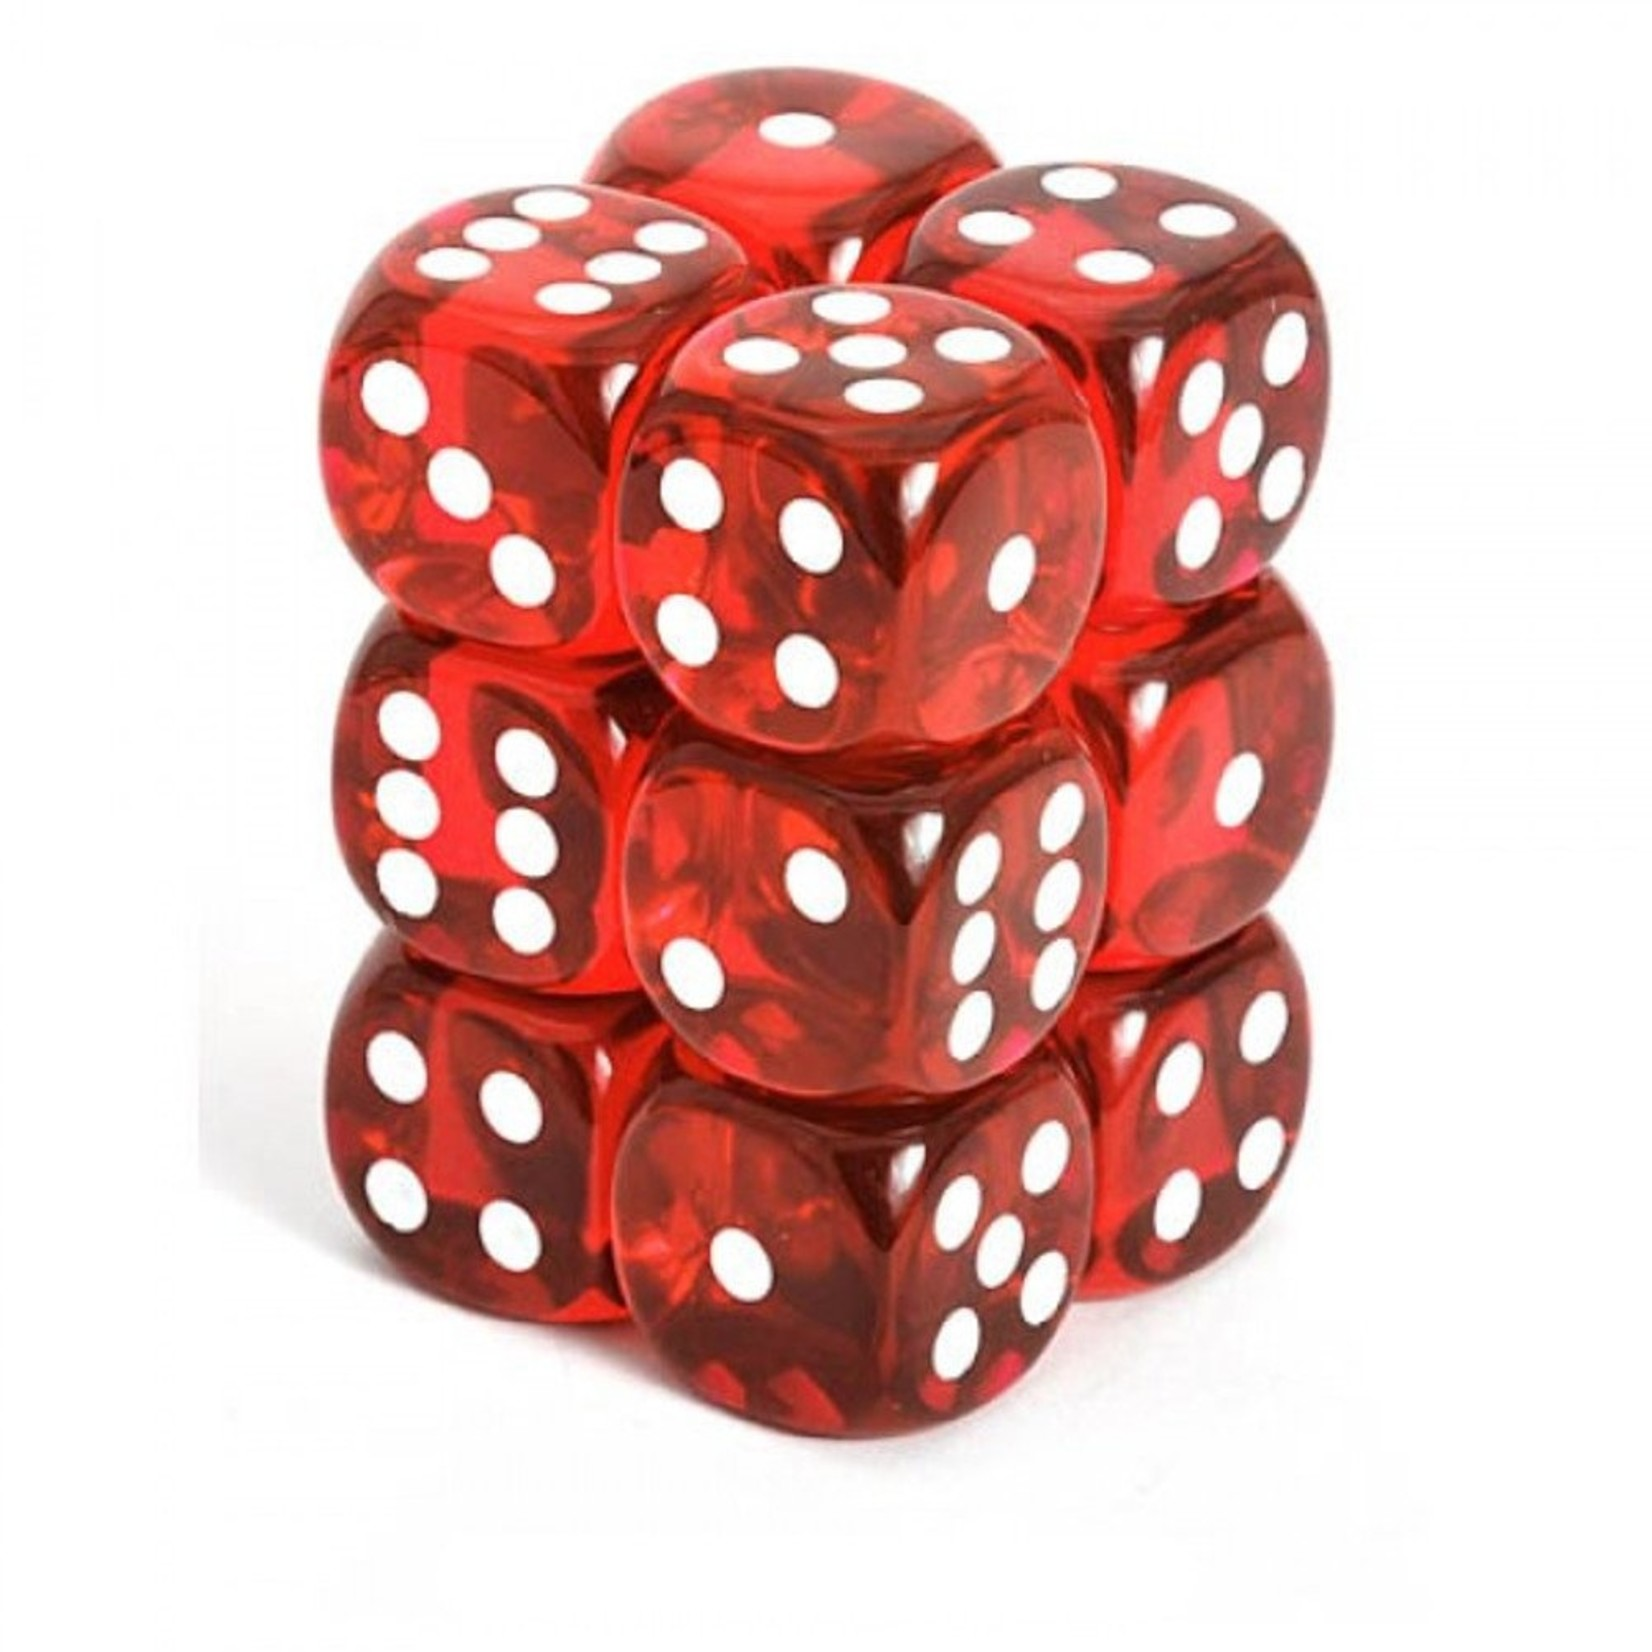 Translucent: 16mm D6 Red/White (12)